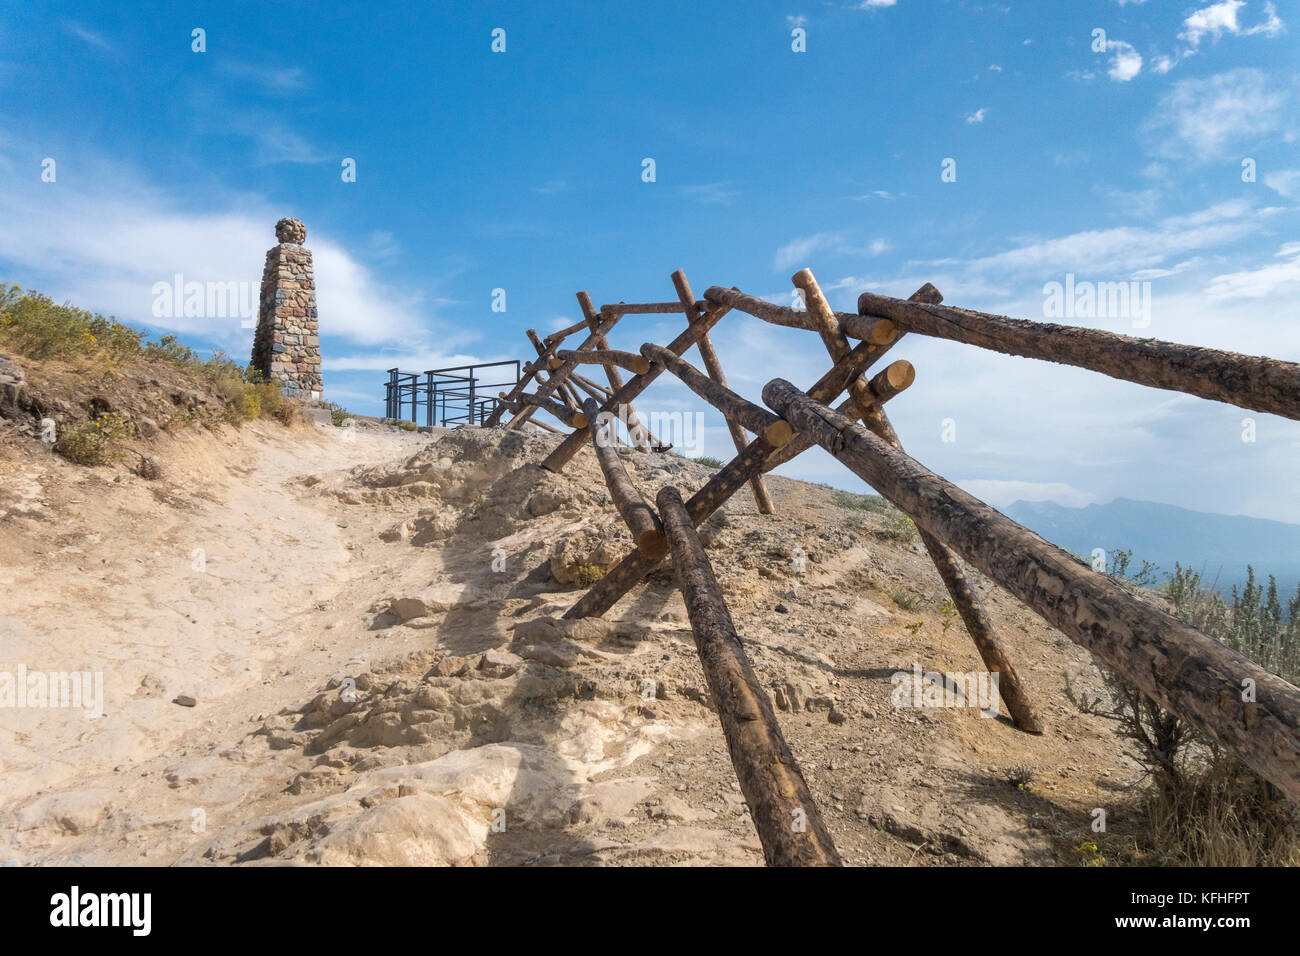 Ensign Peak Nature Park. Trail leading to the Historic Ensign Monument overlooking Salt Lake City. Stock Photo